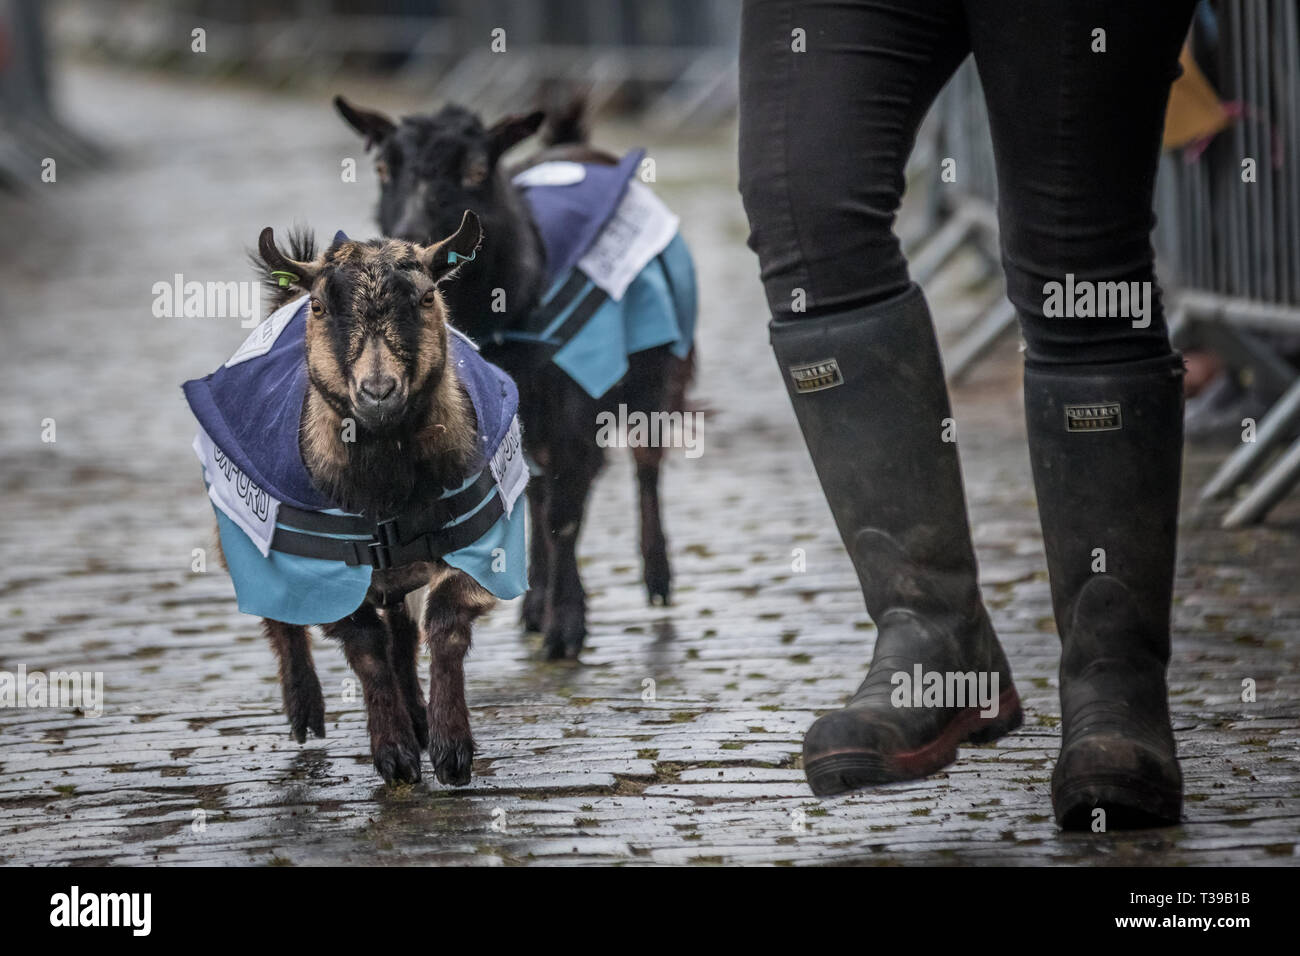 London, UK. 7th April, 2019. 11th Annual Oxford vs Cambridge Goat Race at Spitalfields City Farm in east London. Credit: Guy Corbishley/Alamy Live New Stock Photo